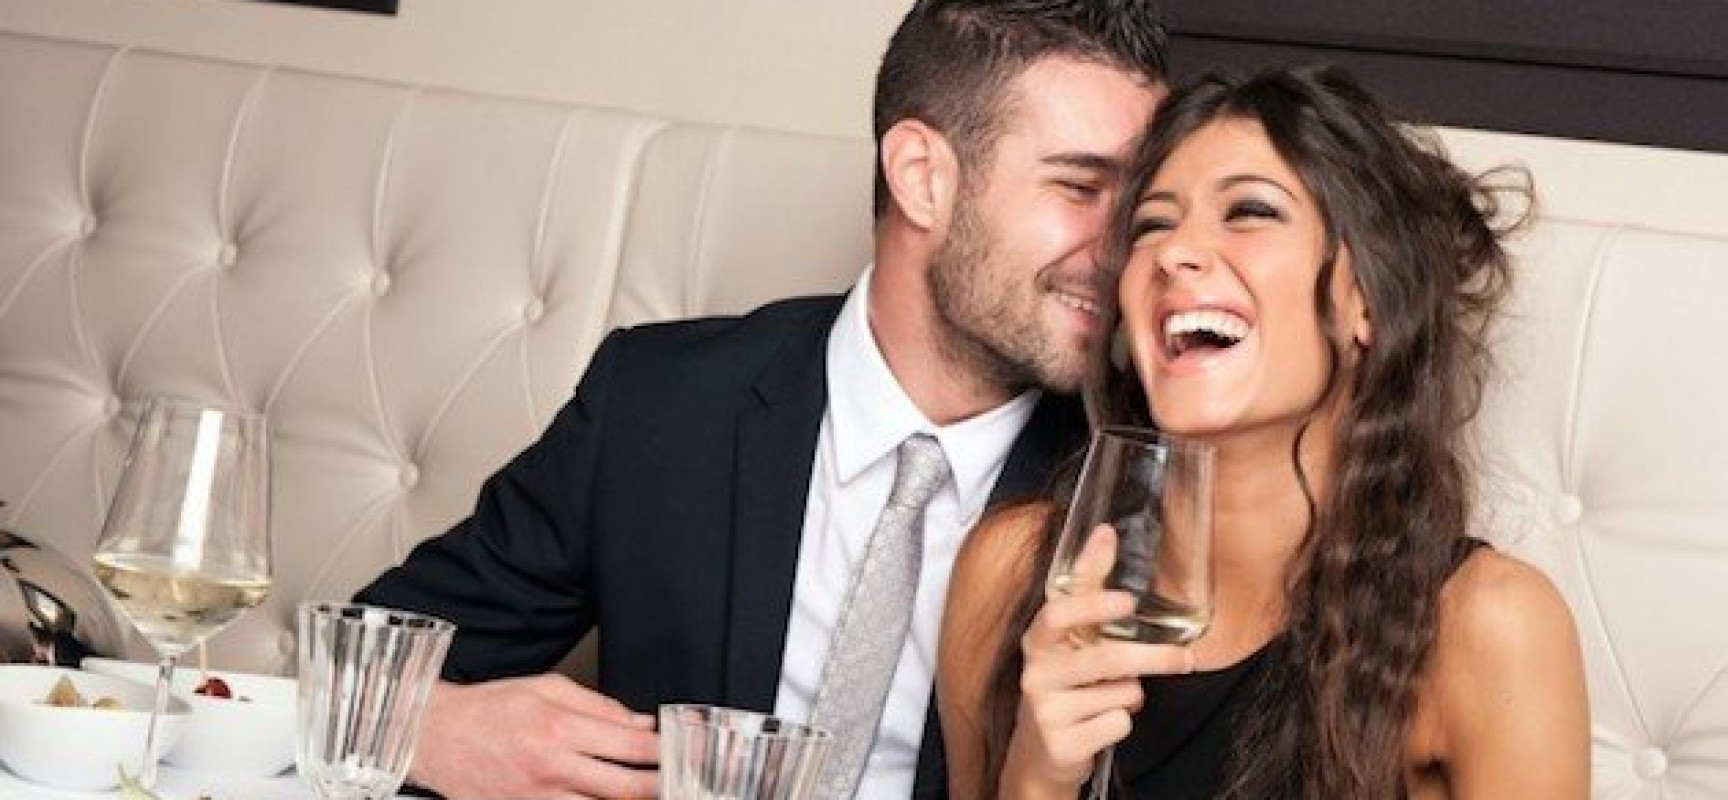 10 Pointers to keep in Mind for a First Date